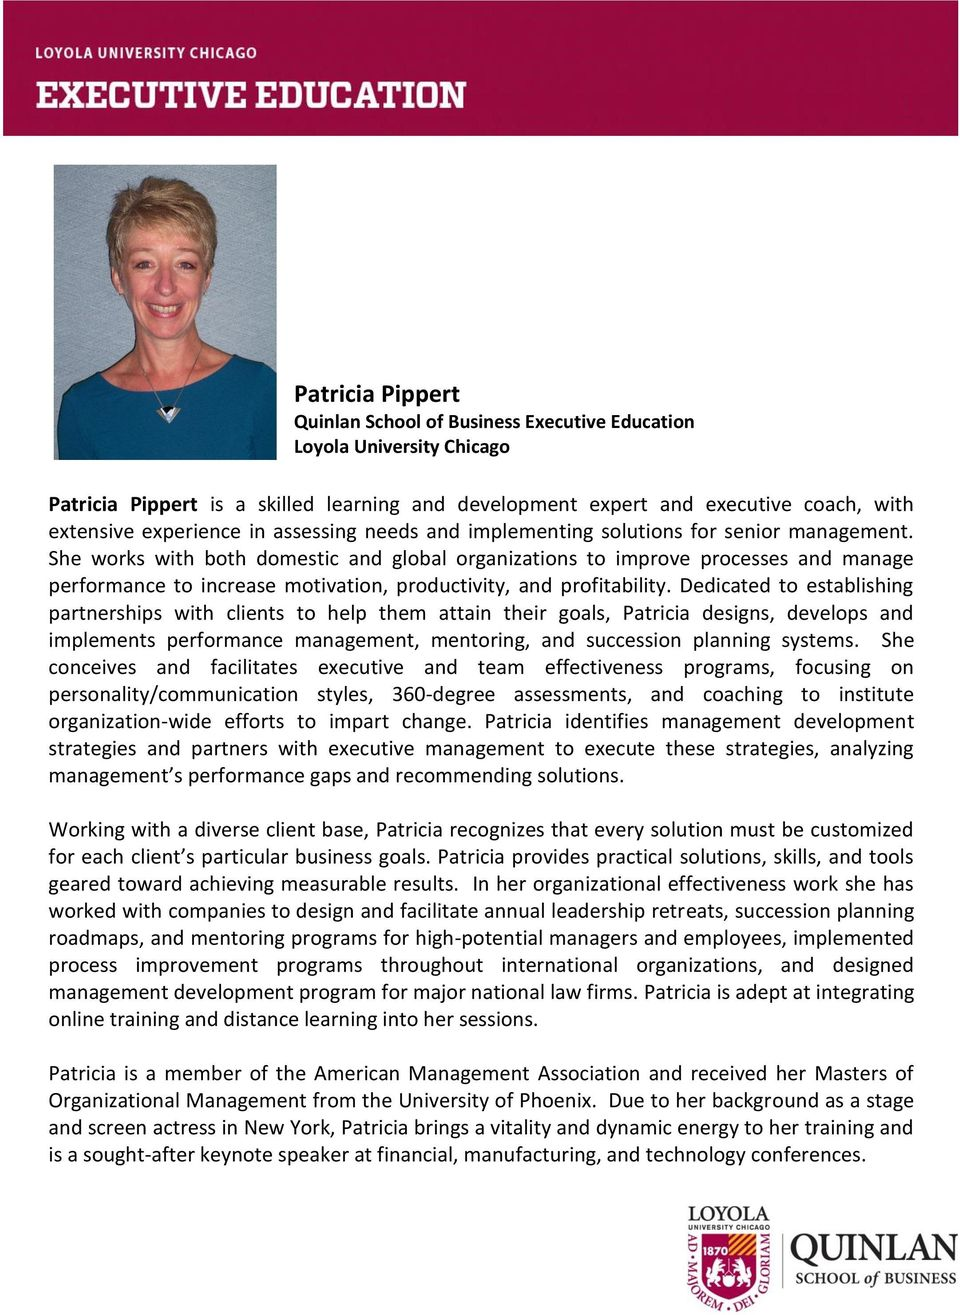 Dedicated to establishing partnerships with clients to help them attain their goals, Patricia designs, develops and implements performance management, mentoring, and succession planning systems.